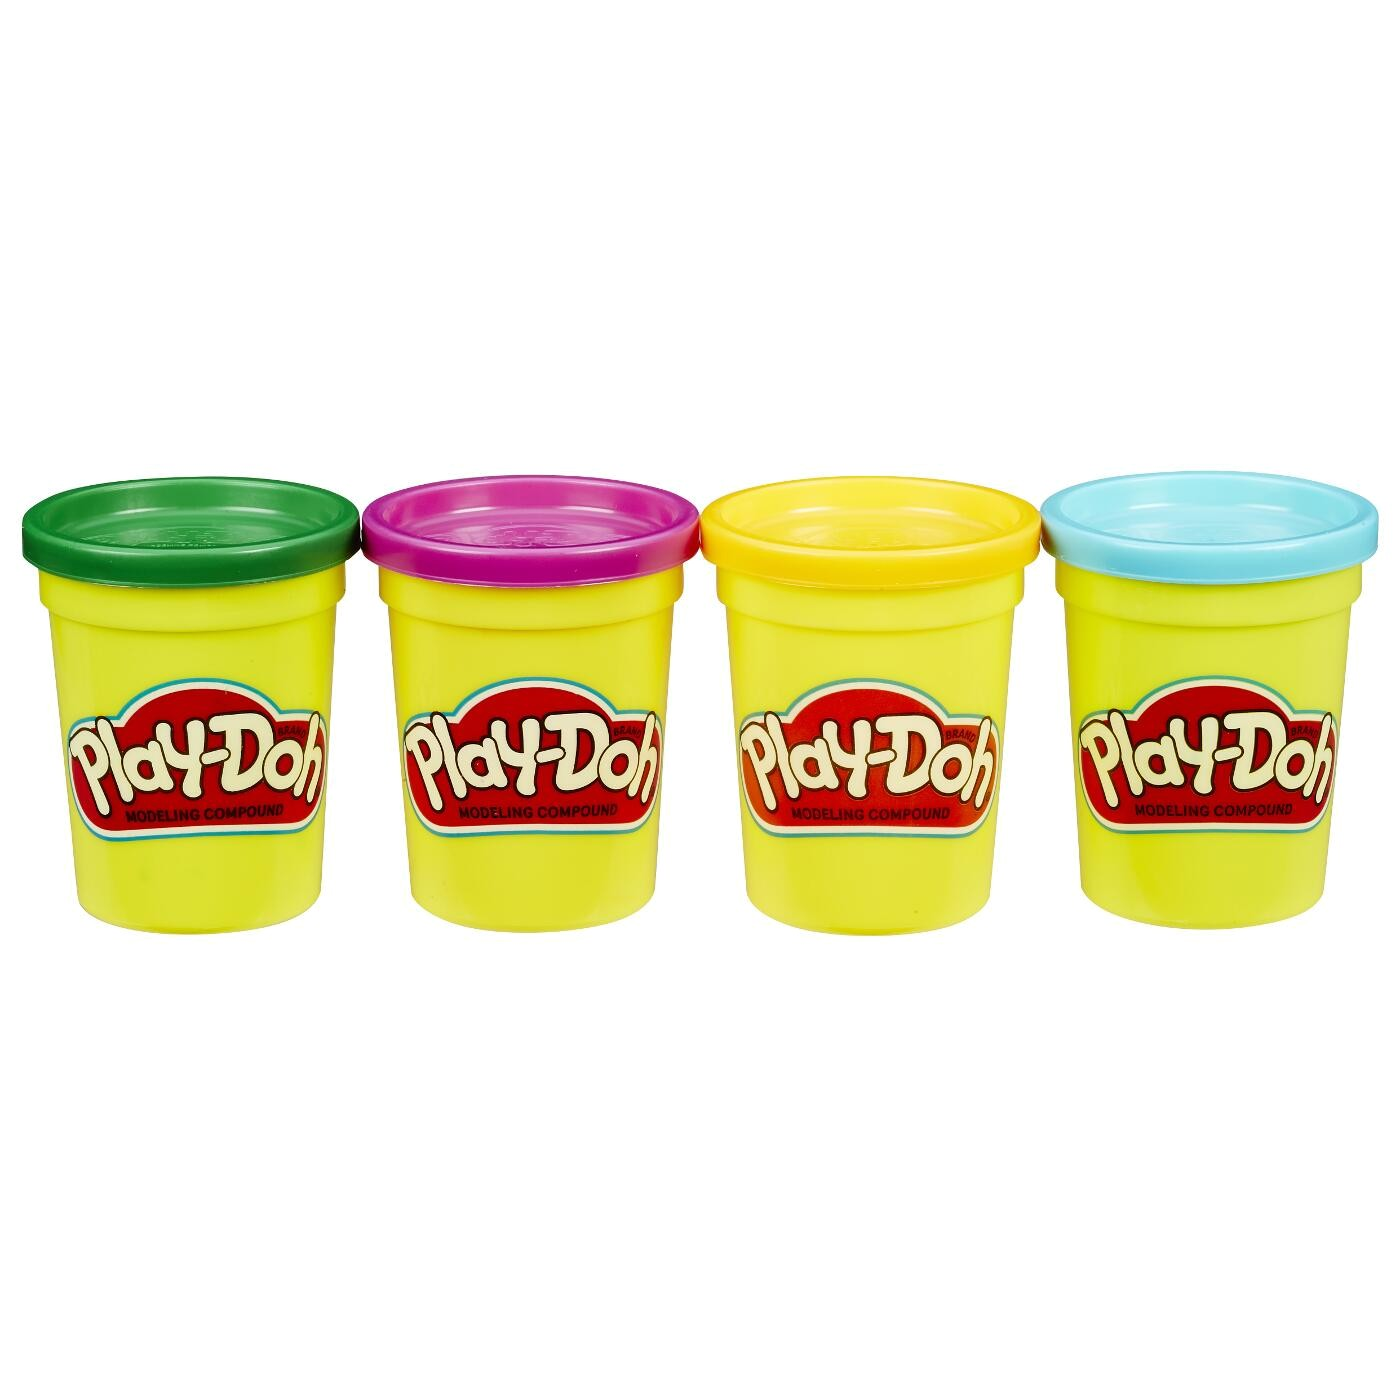 PLAY DOH CLASSIC COLOUR